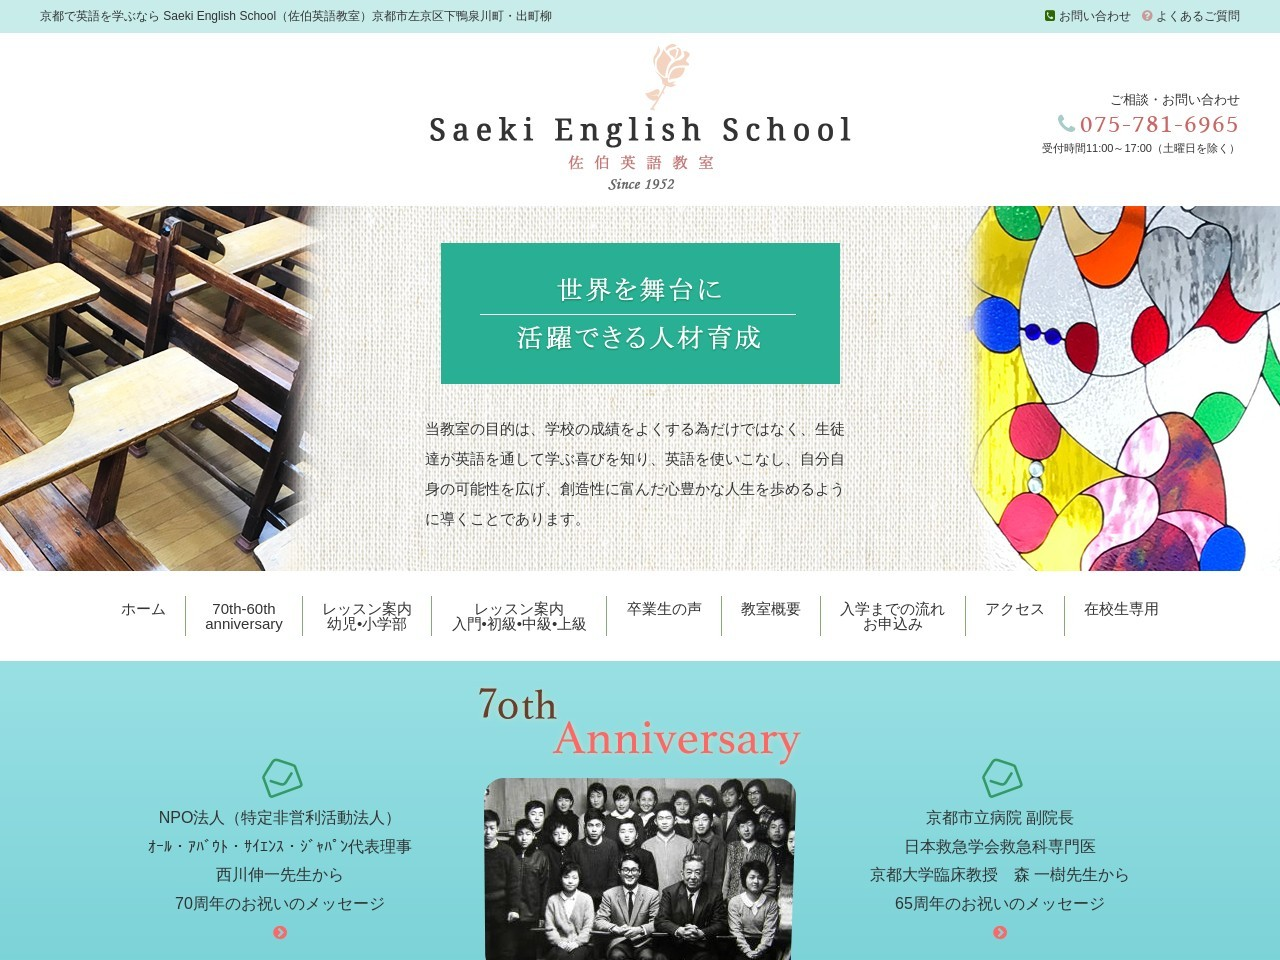 SaekiEnglishSchool